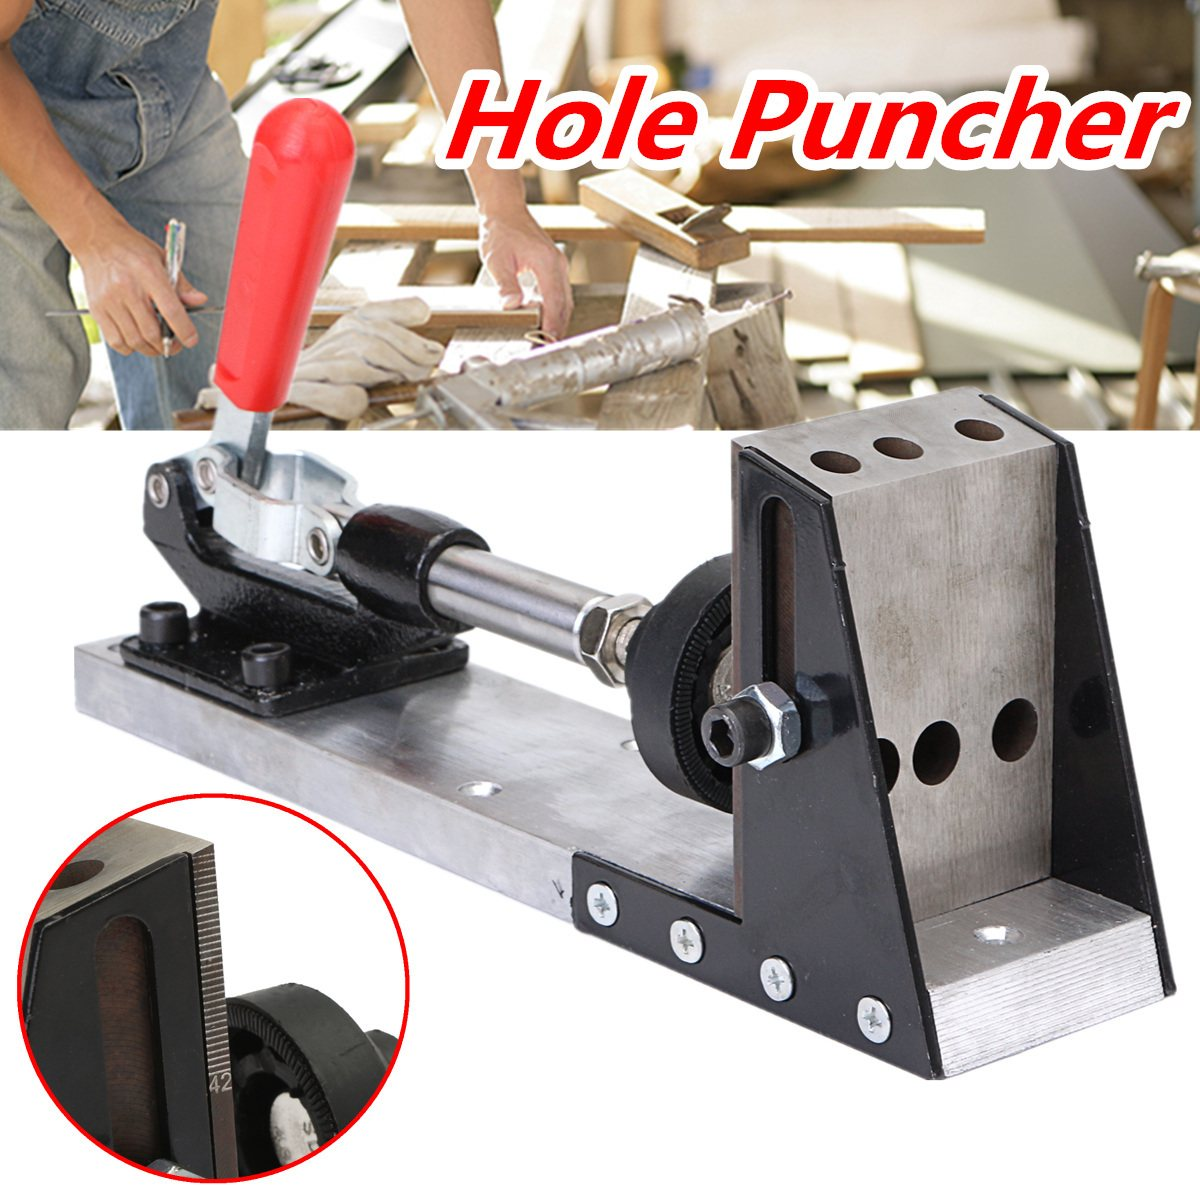 New Woodworking Tool Pocket-Hole Puncher Jig Drill Guide Master Kit Carpenter Joinery System Woodworking Plug Cut Tool футболка il gufo il gufo il003ebrho84